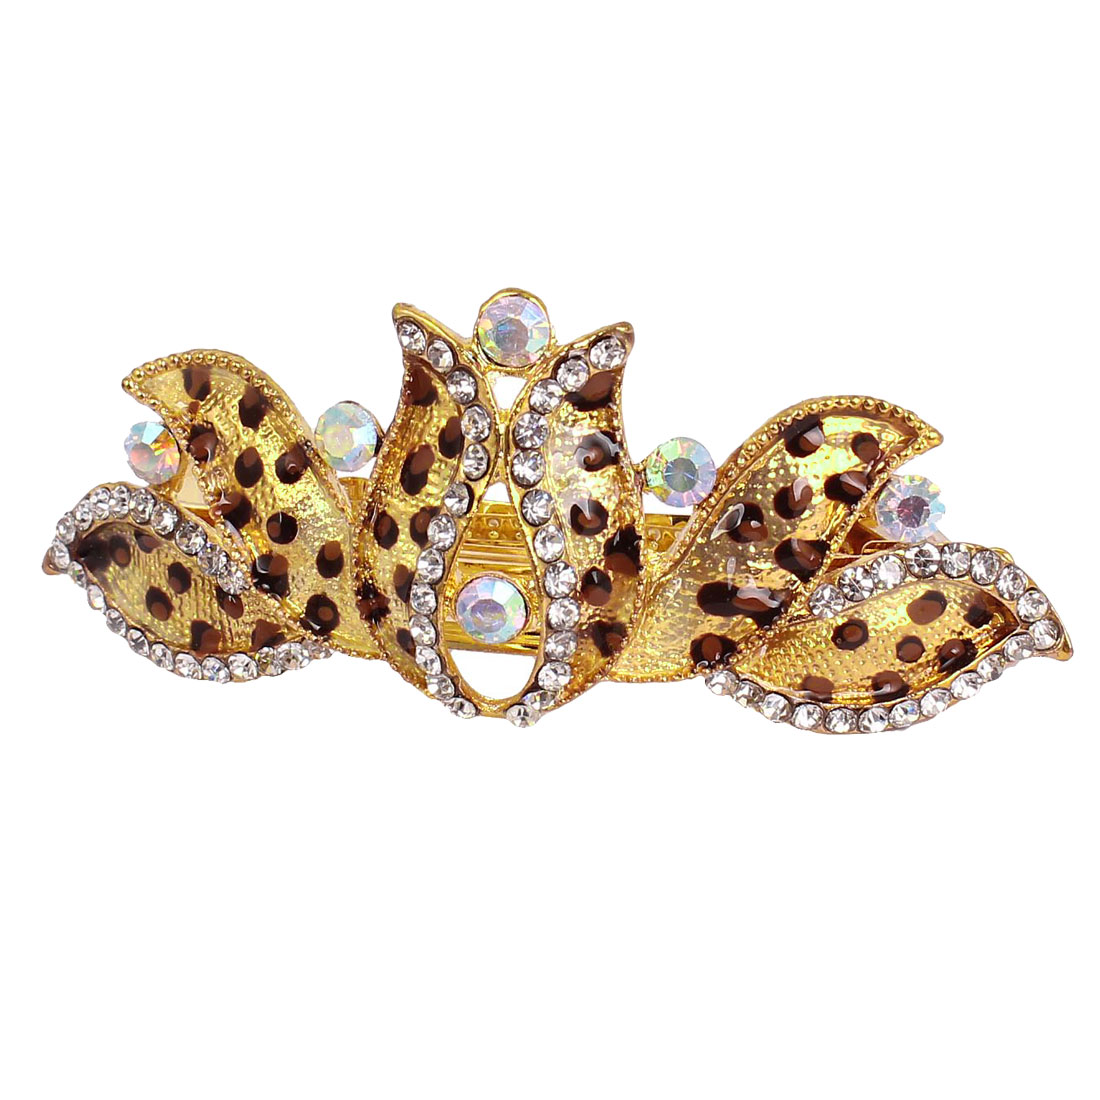 Leopard Pattern Rhinestone Flower Design French Hair Clip Barrette Brown